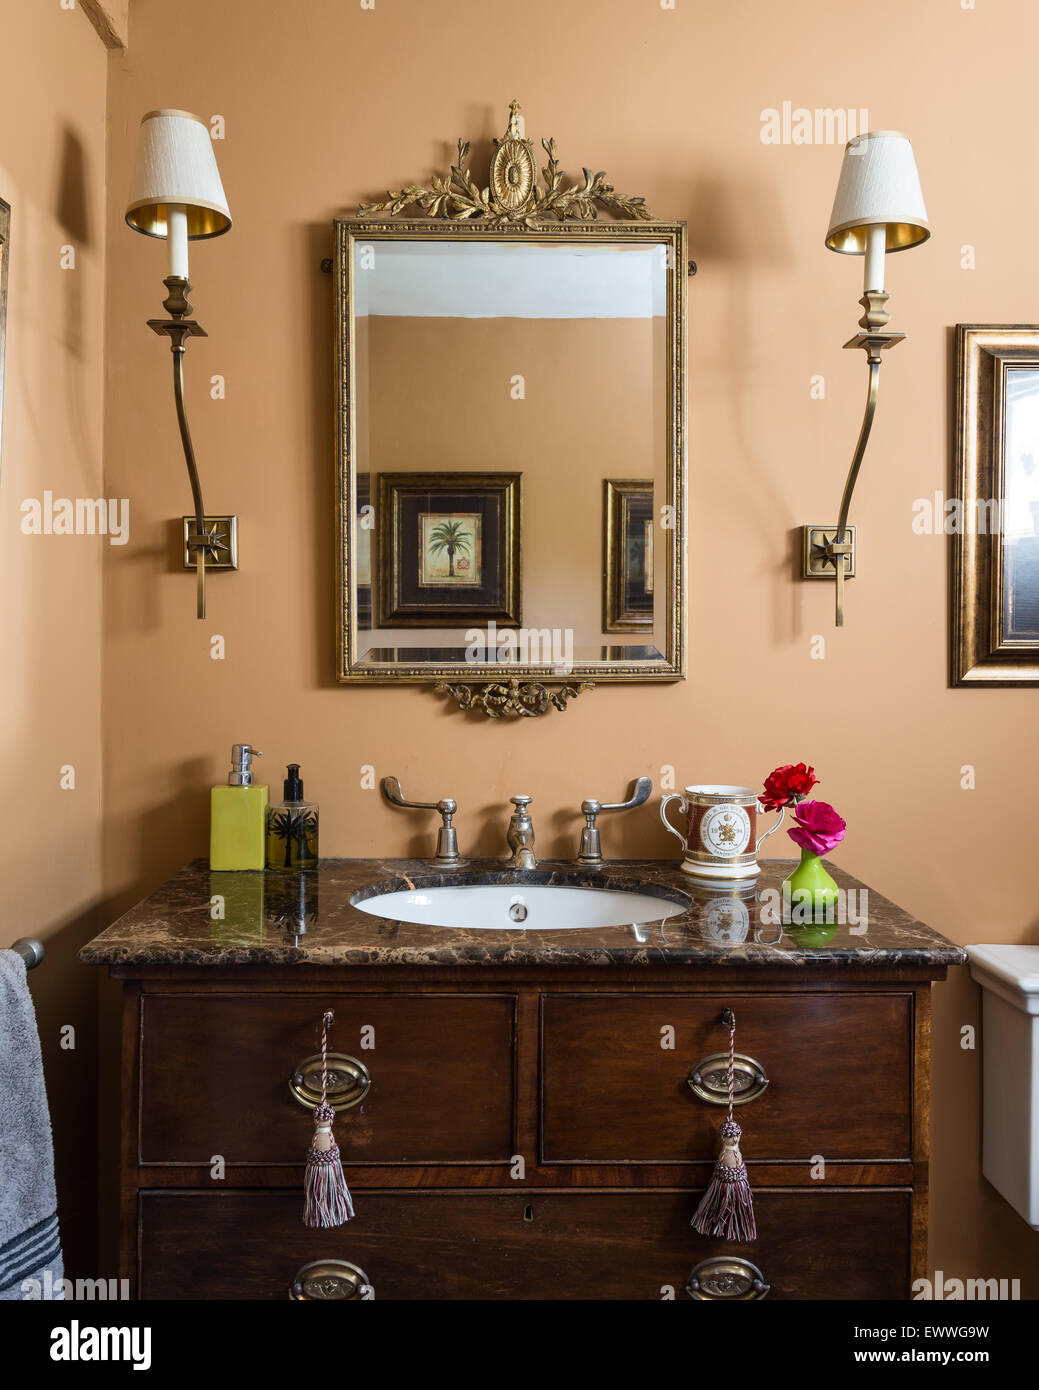 Marble topped antique vanity unit in cloakroom with walls painted in Indian  Summer by Flamant Paris. - Marble Topped Antique Vanity Unit In Cloakroom With Walls Painted